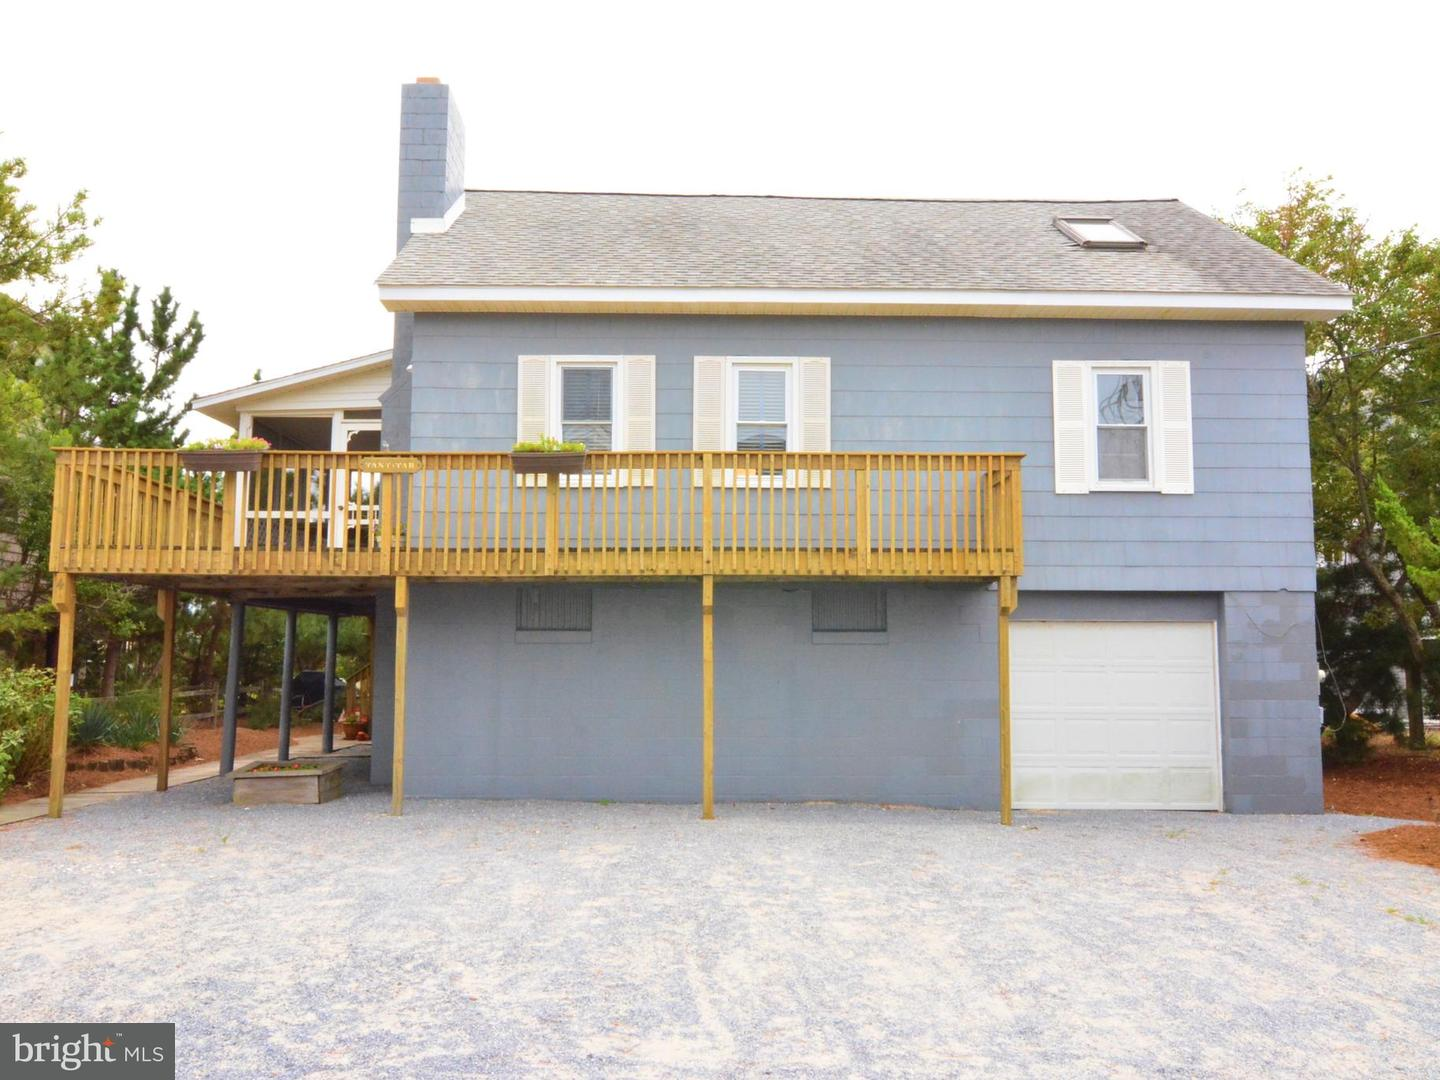 1002299338-300501703146-2018-08-30-10-08-41 4 S 4th St | South Bethany, De Real Estate For Sale | MLS# 1002299338  - Suzanne Macnab